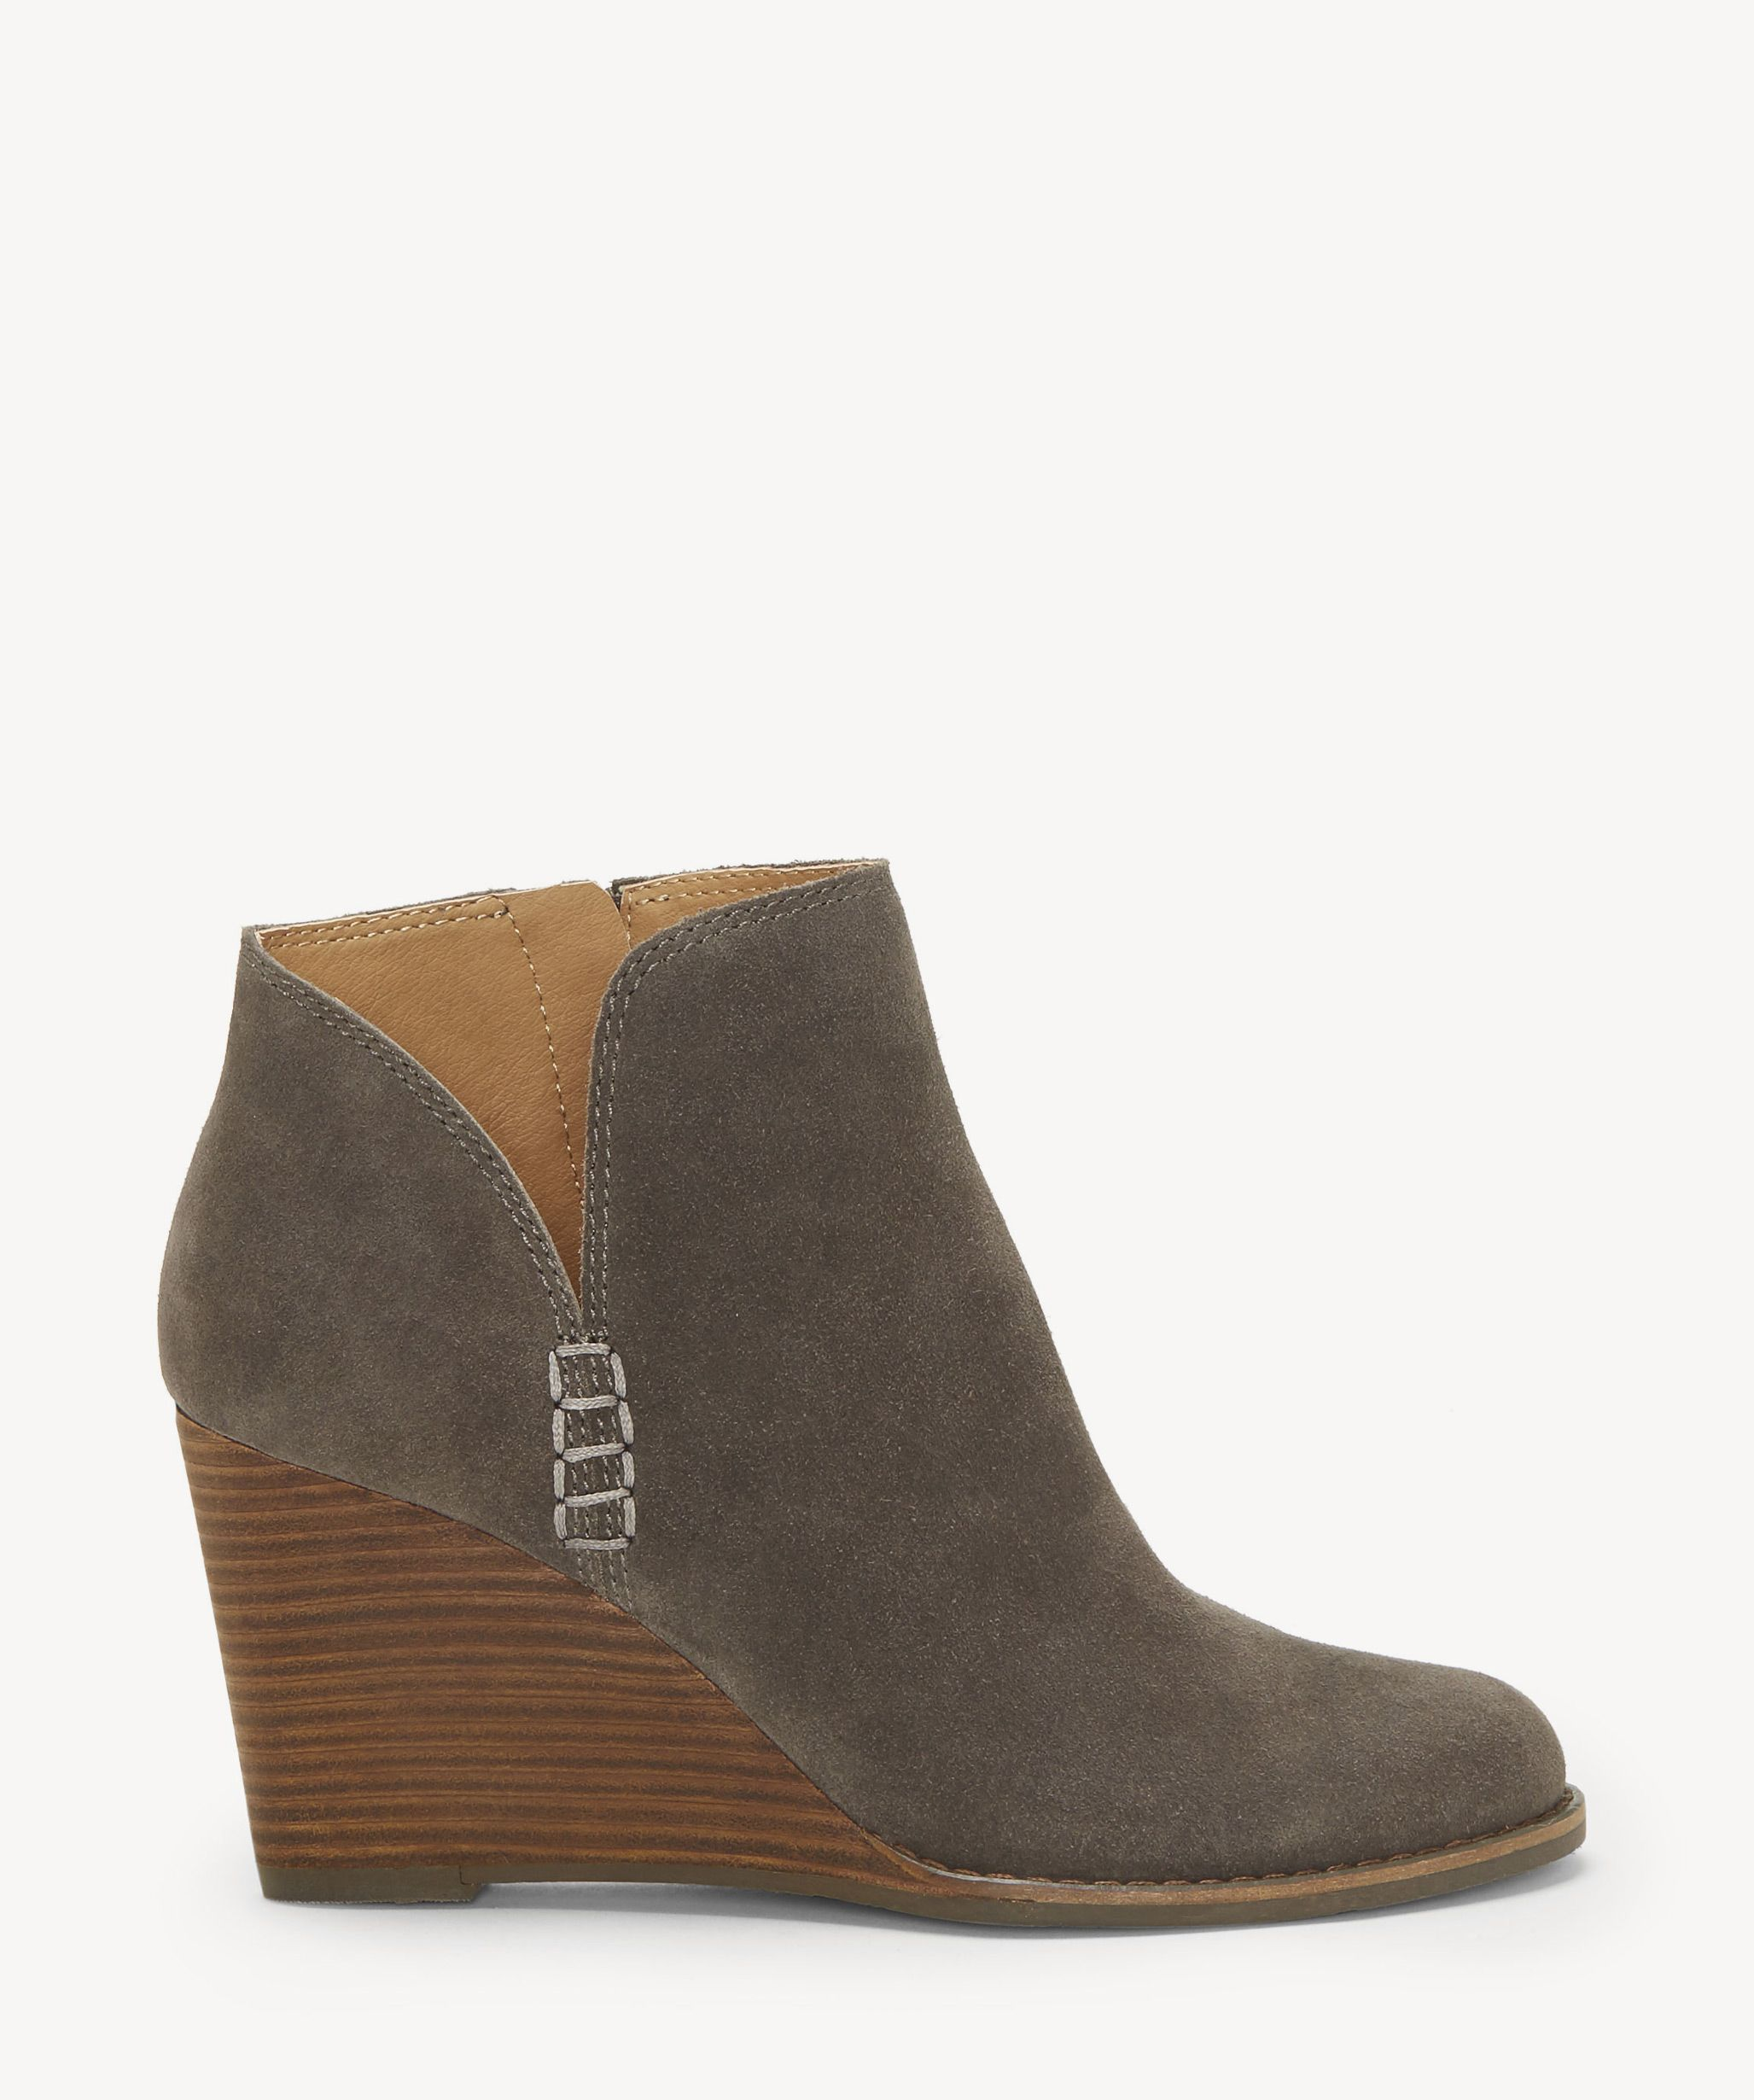 Lucky Brand Women/'s Yabba Stacked Wedge Ankle Bootie